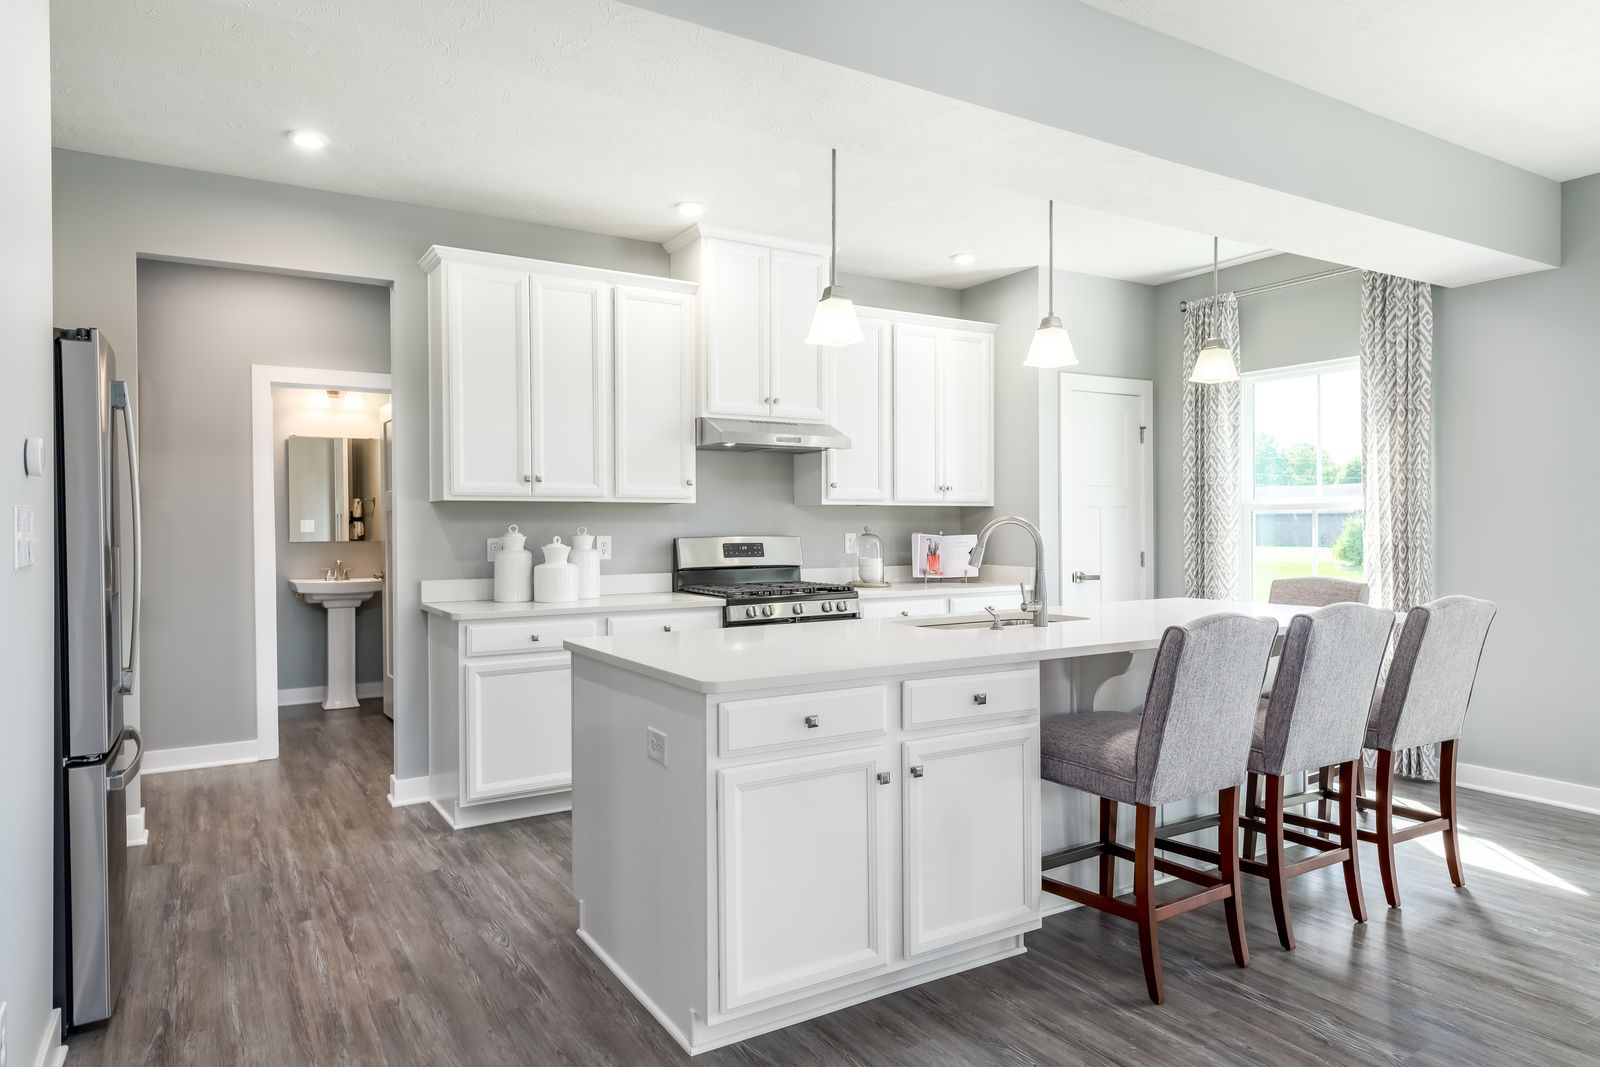 Kitchen featured in the Hudson By Ryan Homes in Indianapolis, IN